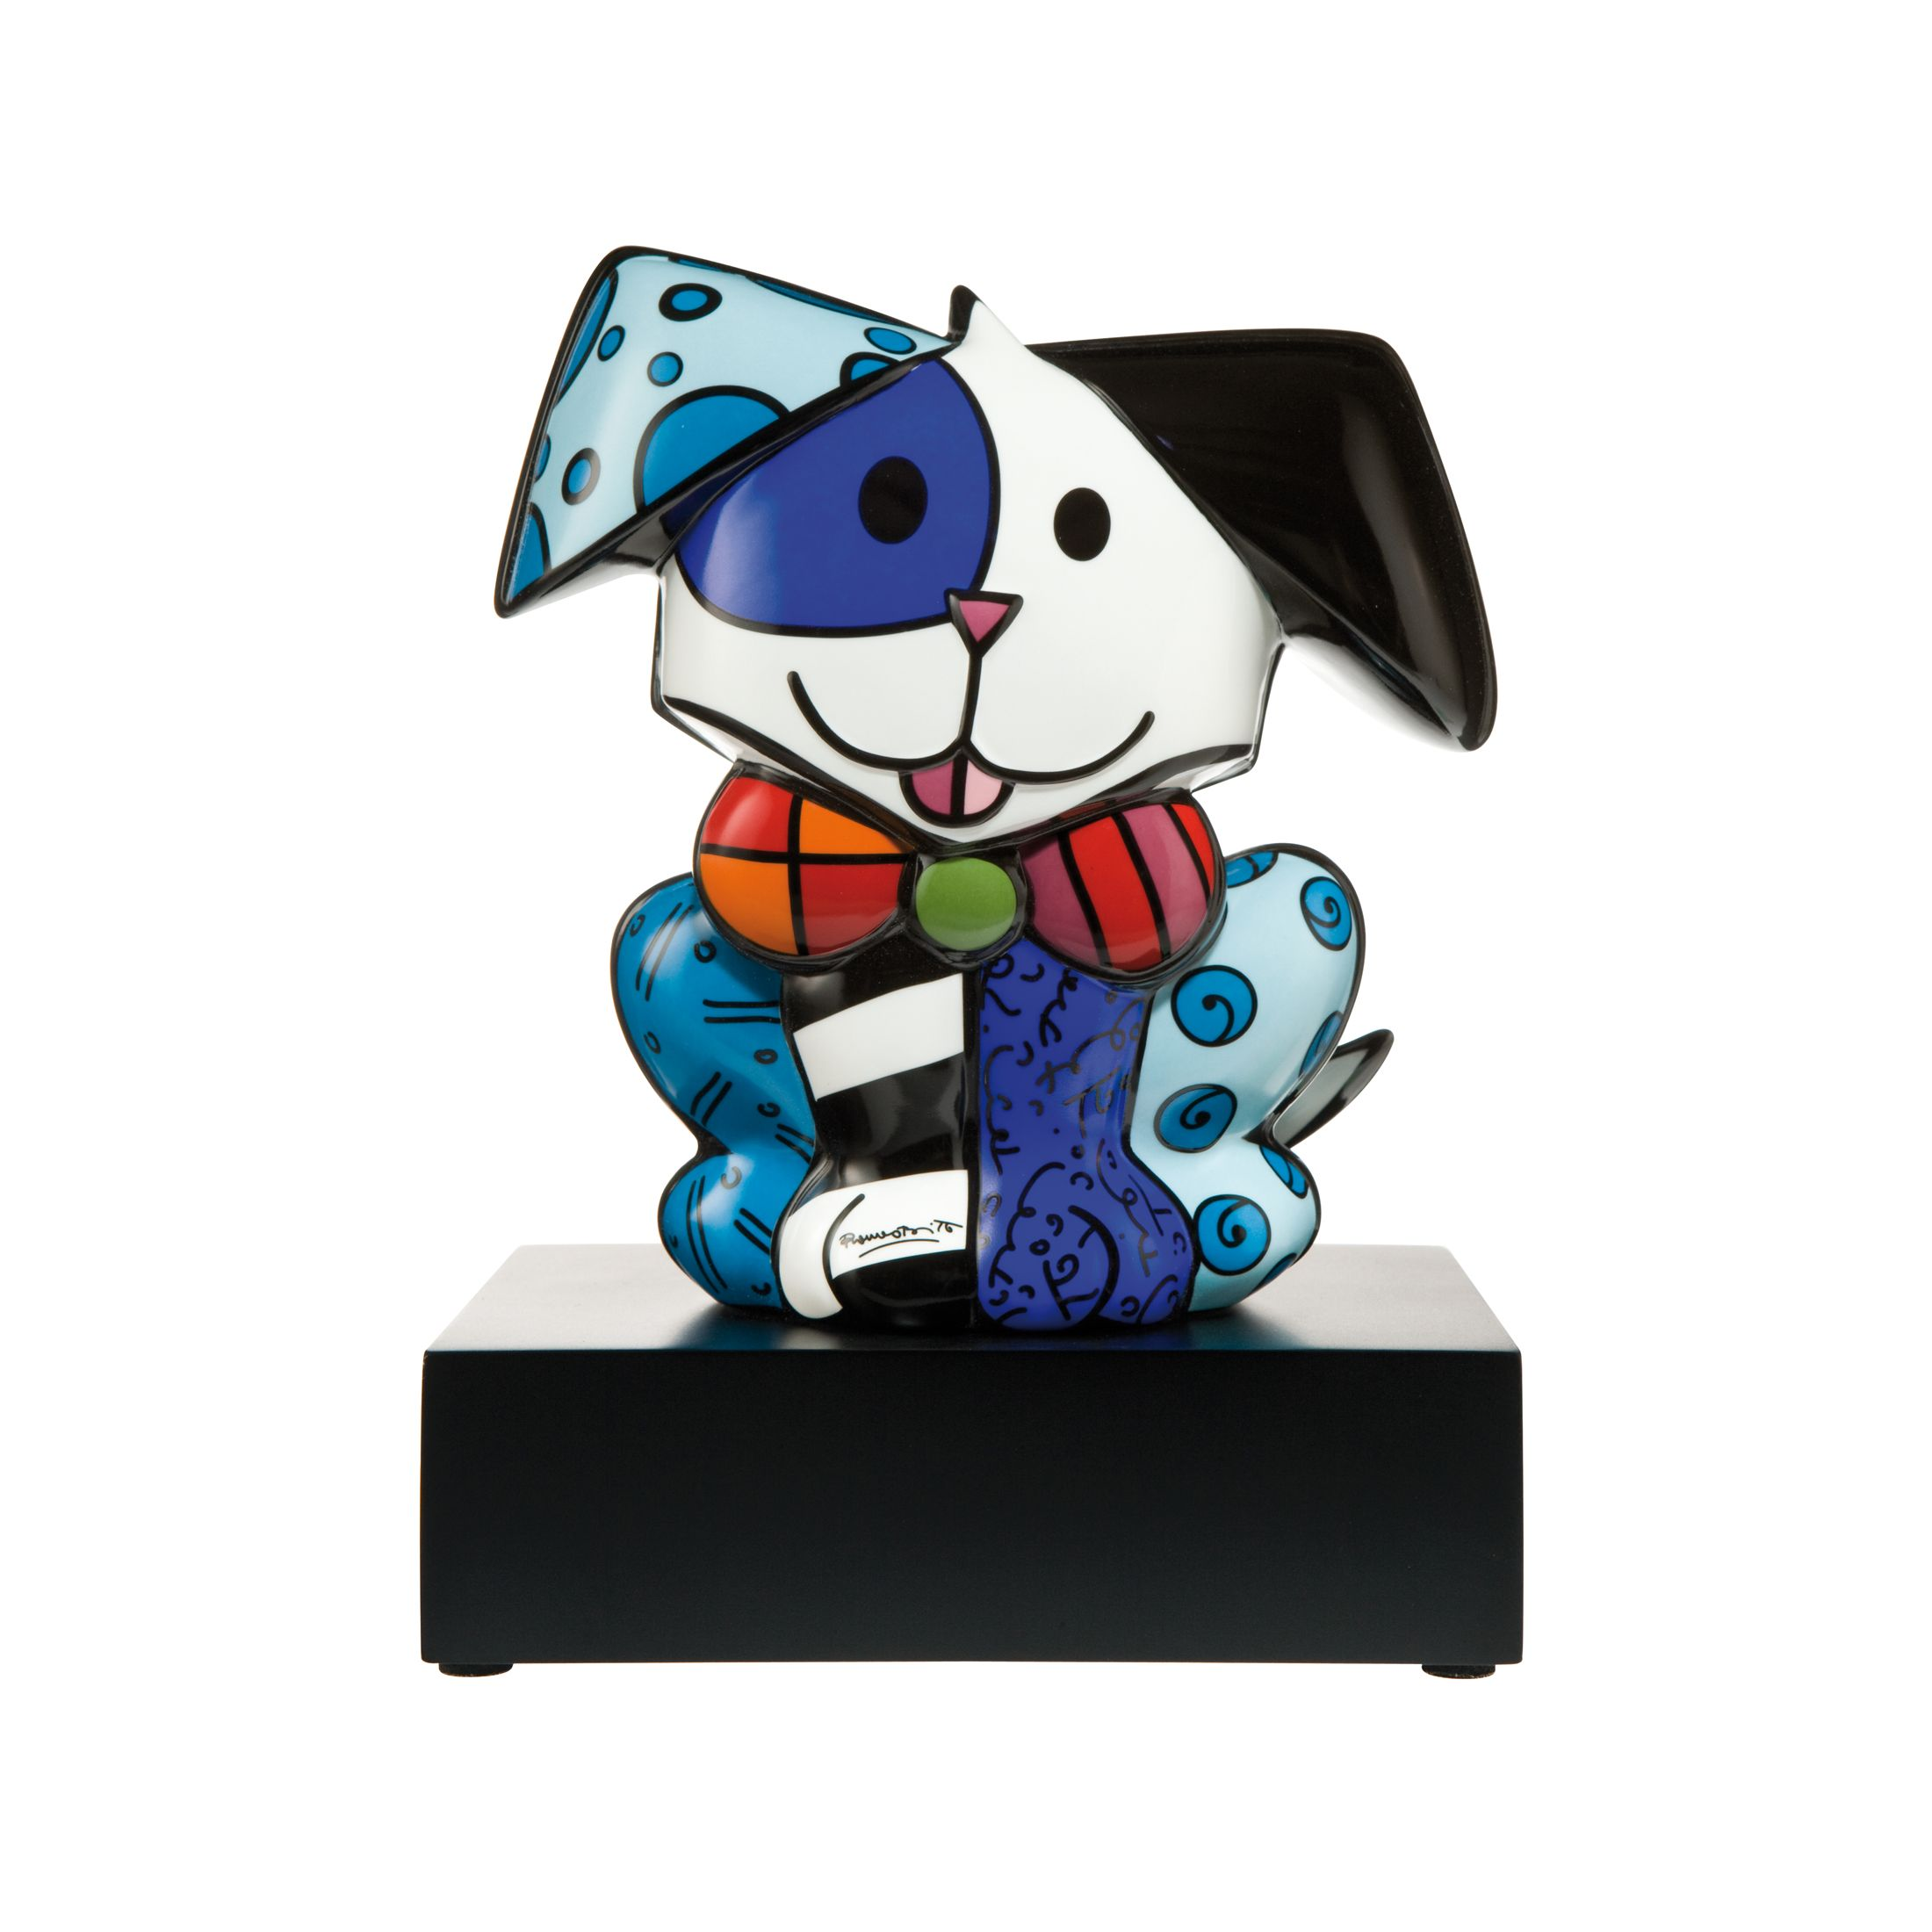 Chien His Royal Highness - Figurine 20,5 cm Romero Britto Pop Art